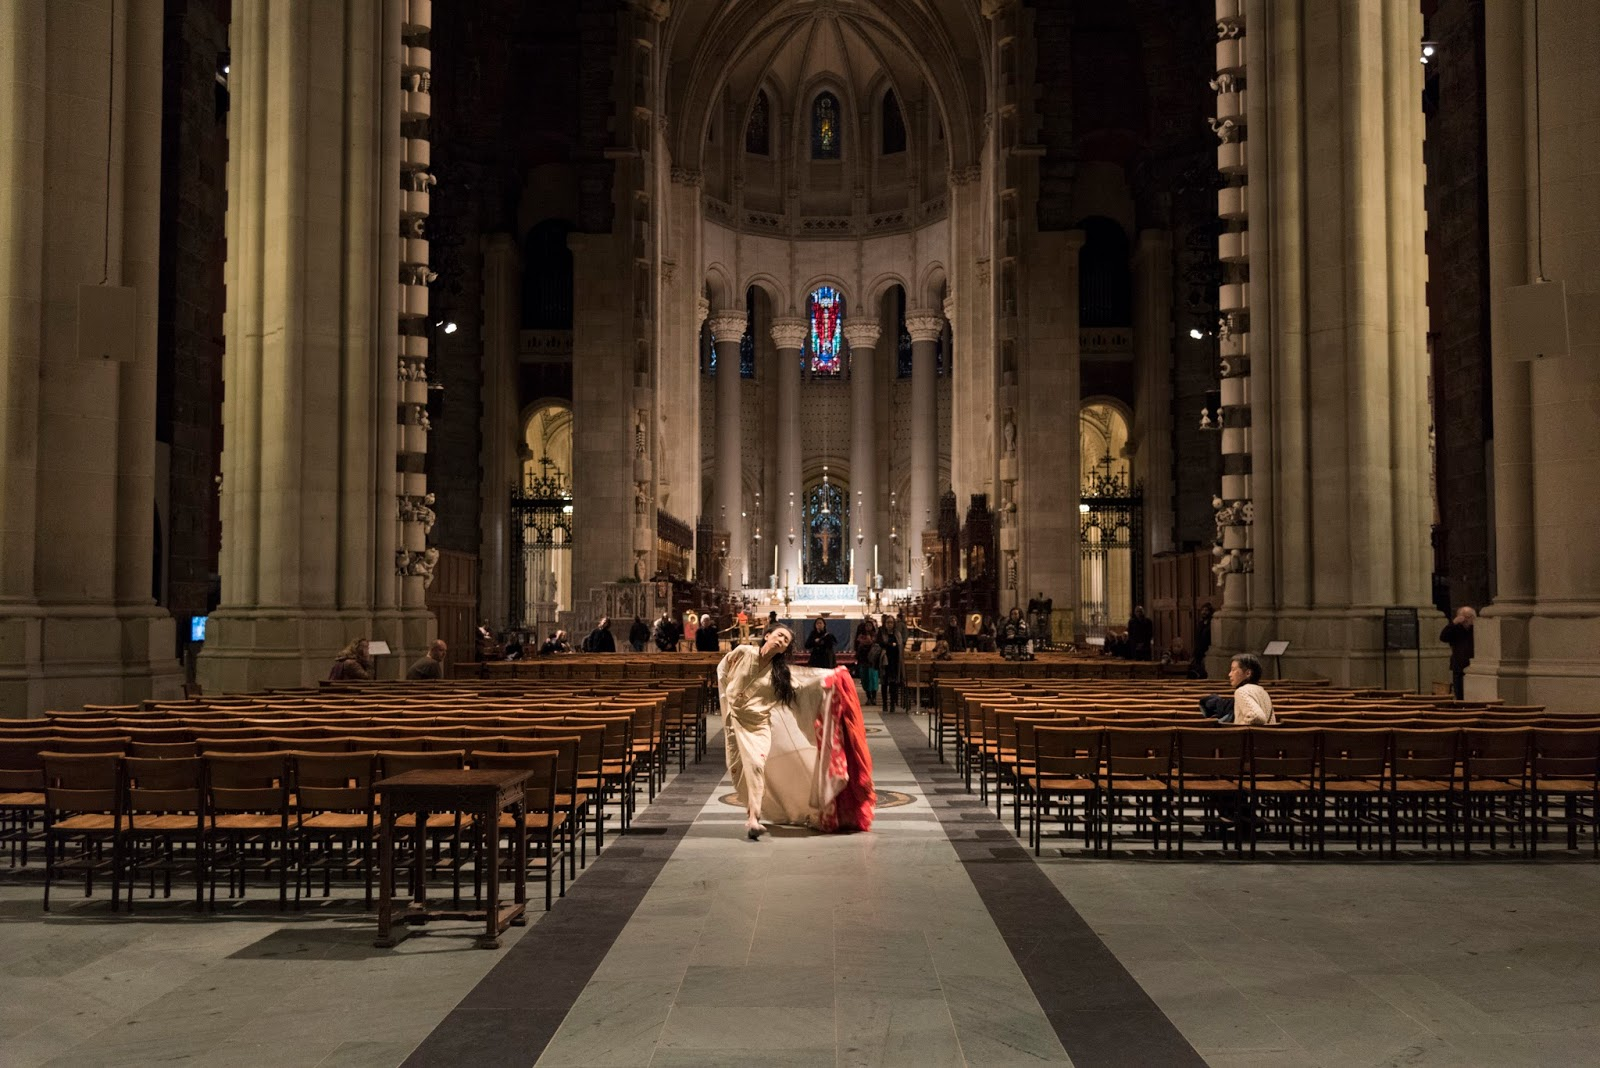 InfiniteBody: Update on Eiko Otake at Cathedral of St. John the Divine